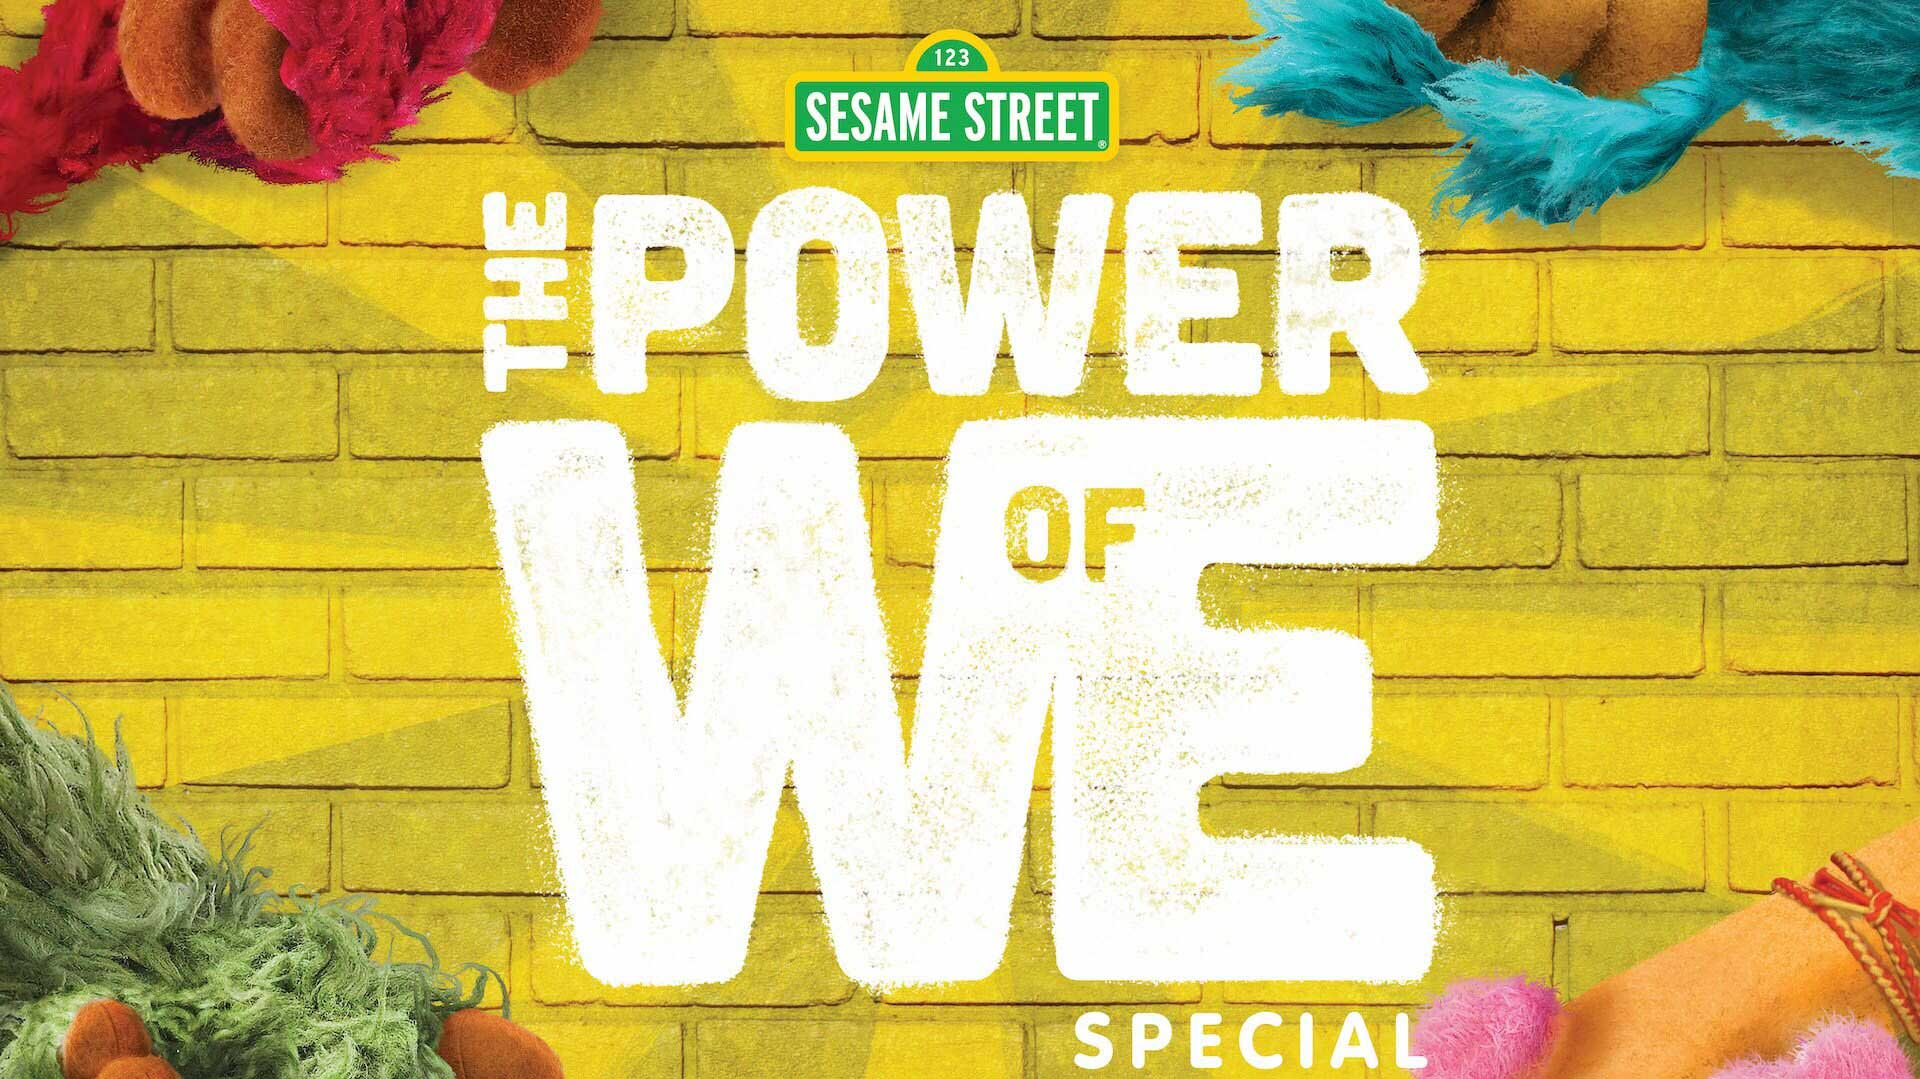 The Power of We: A Sesame Street Special features Elmo and Abby Cadabby, who are joined by 6-year-old Muppet Gabrielle and her cousin, 8-year-old Tamir.